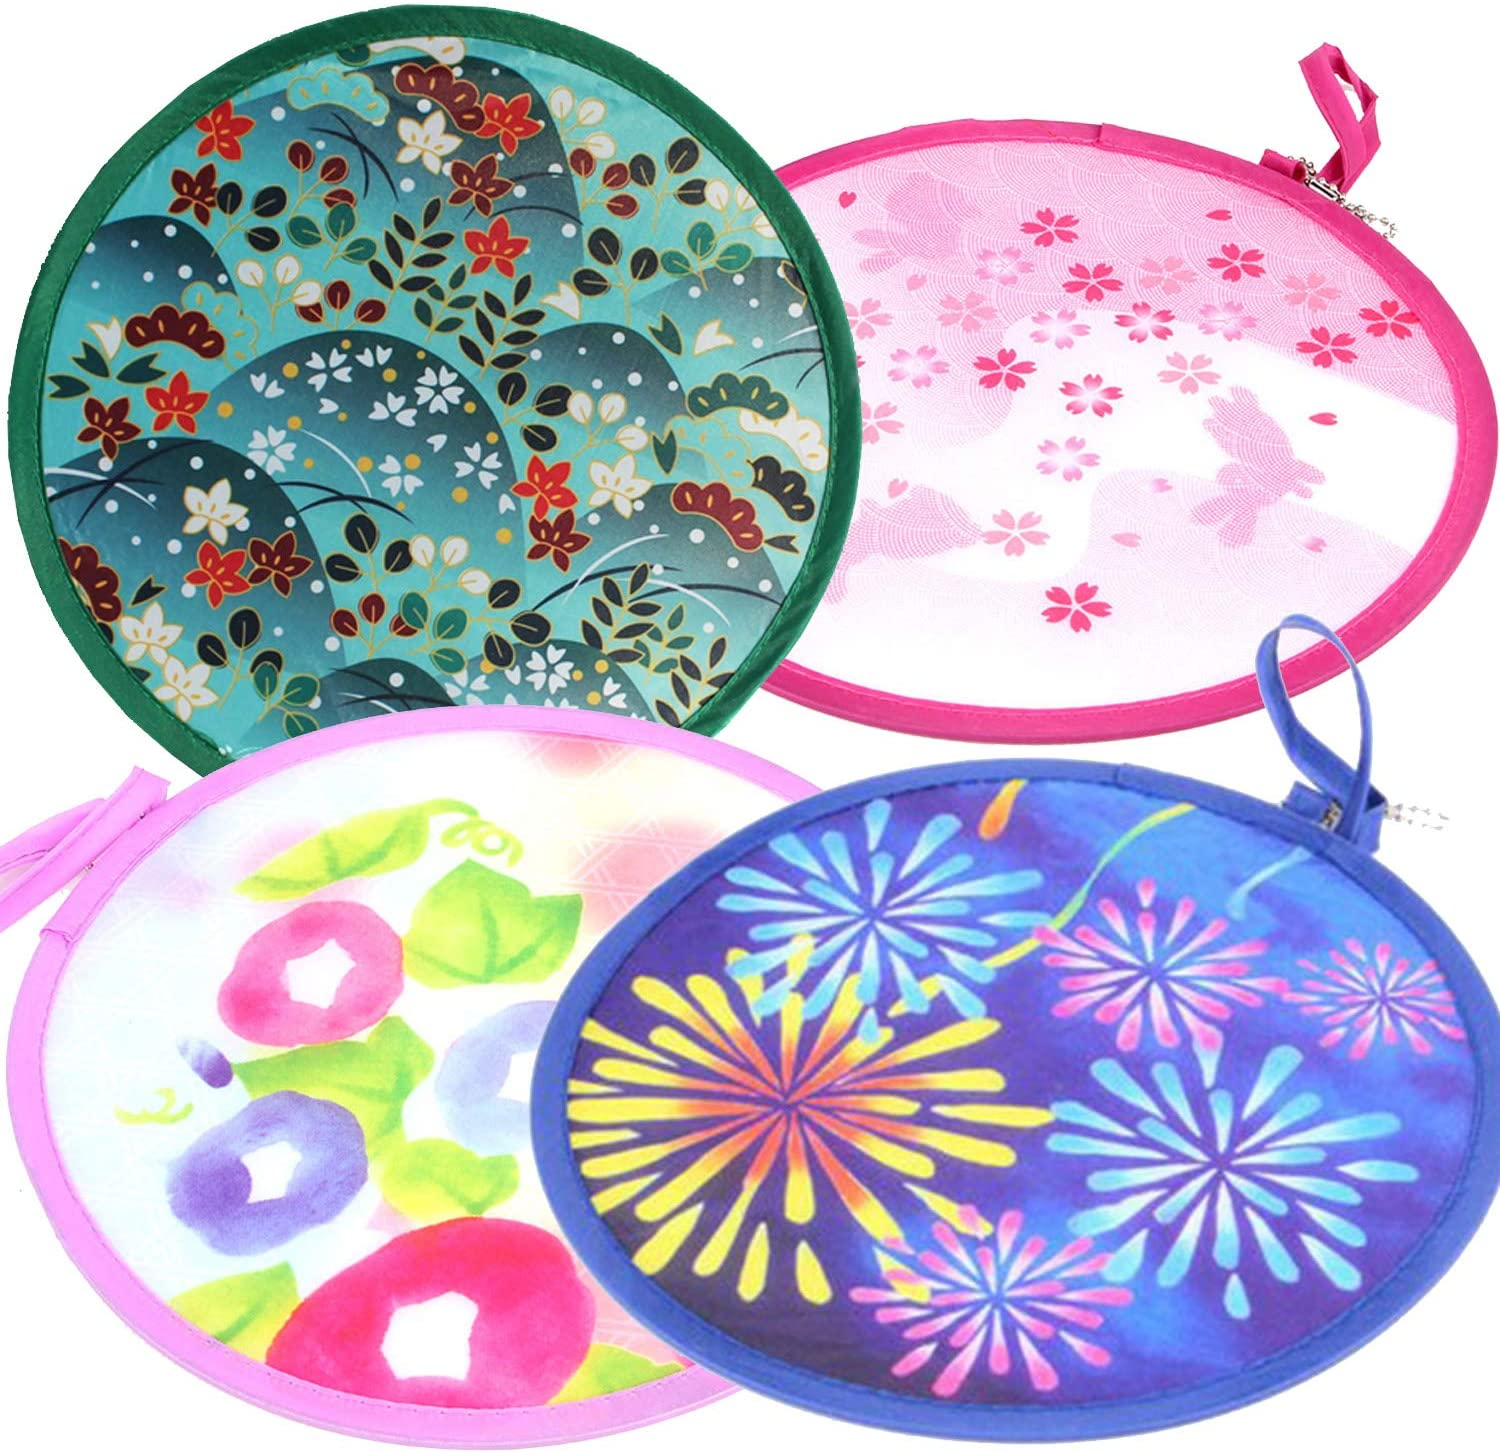 MXY Foldable Fan Japanese Style Summer Handheld Round Folding Fan Beautiful Pattern Festival Decor Wedding Birthdays Home Decoration 4 Units Different Patterns